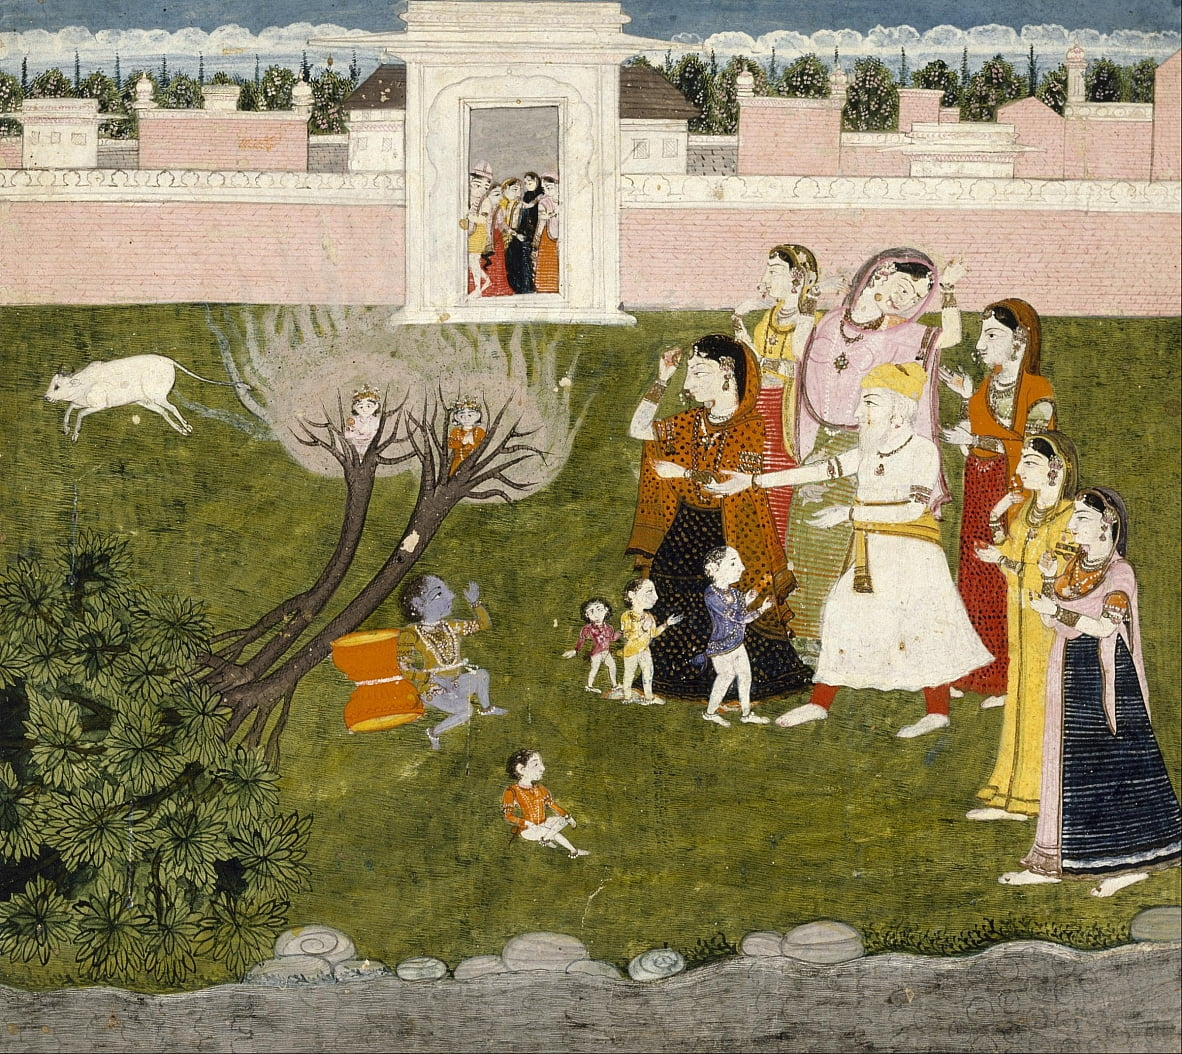 Unknown Indian - Untitled (Story of Krishna) by Unbekannt Unbekannt